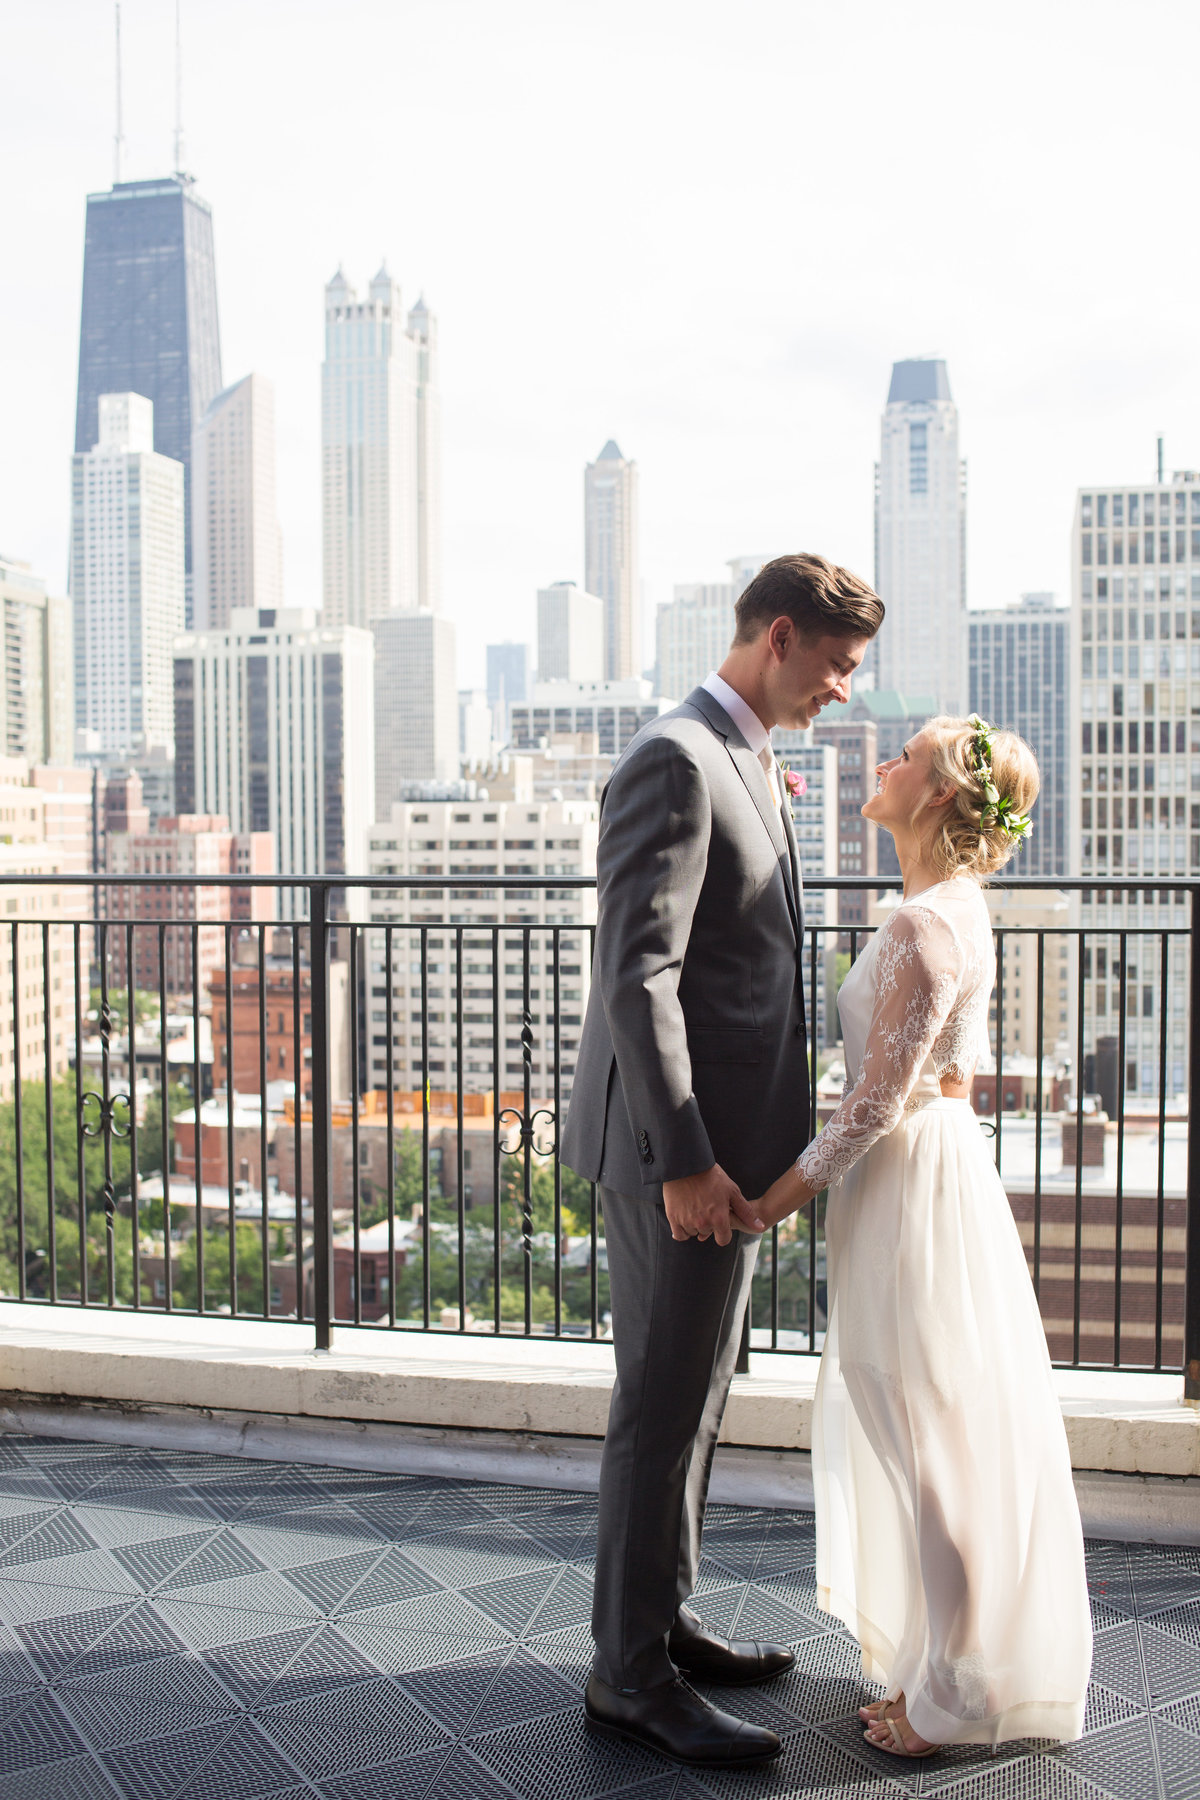 Little-Goat-Public-Hotel-Chicago-Wedding-25